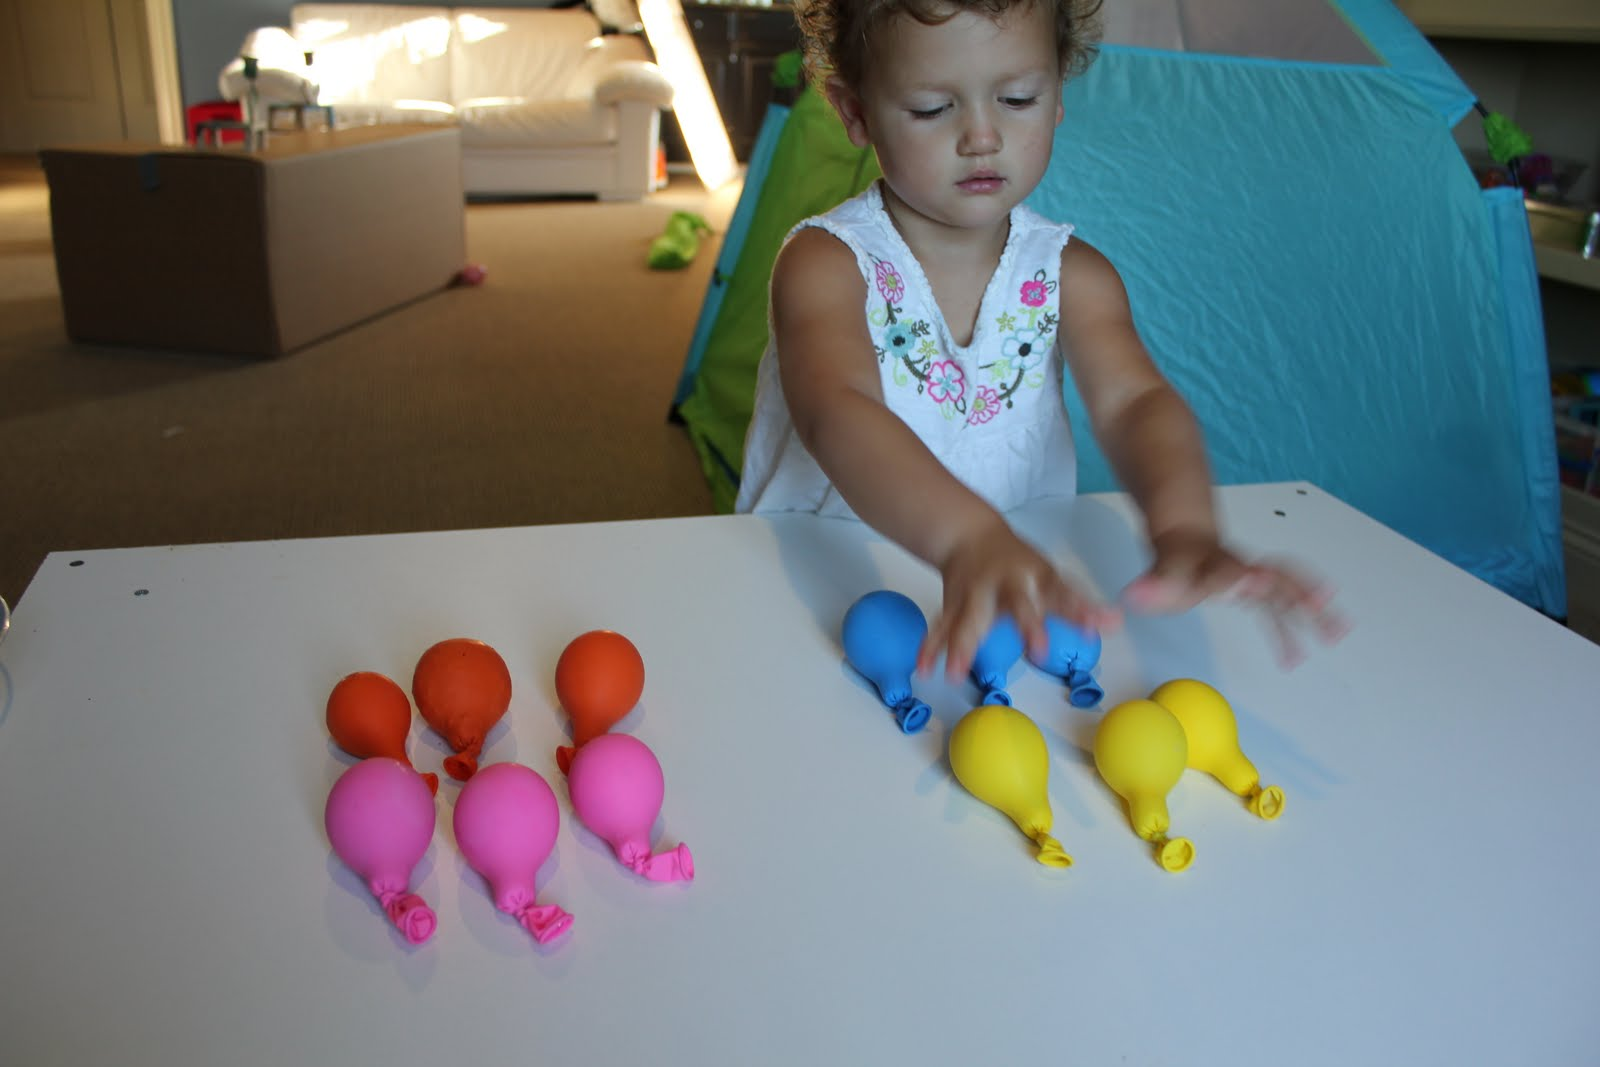 Sensory balloons activities for children sensory for Cool things to do with balloons